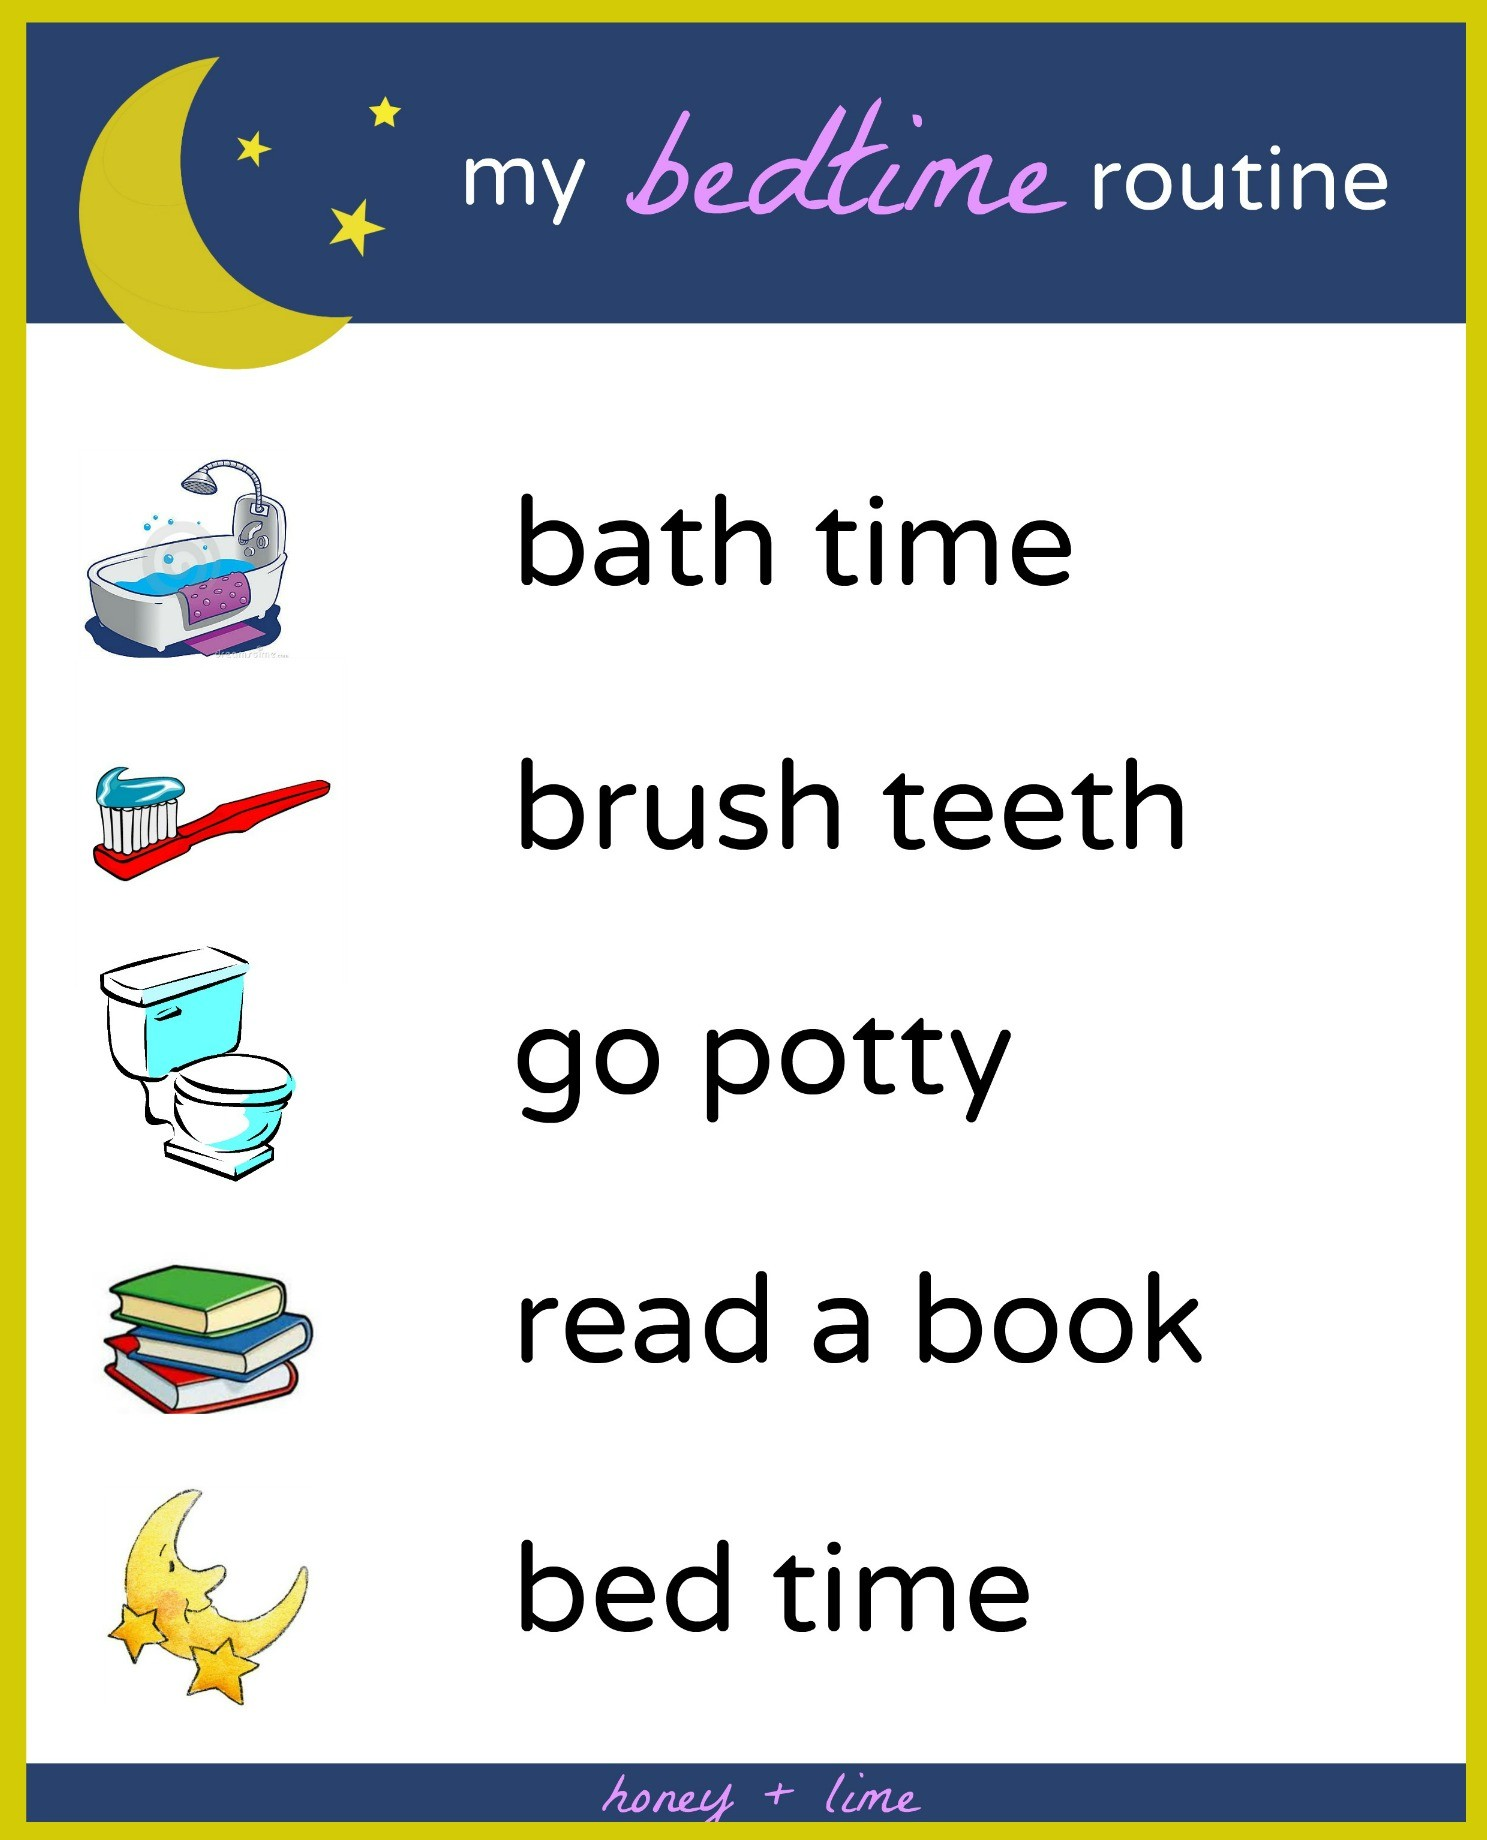 Brush, Book, Bed: A Printable Bedtime Routine Chart for Kids